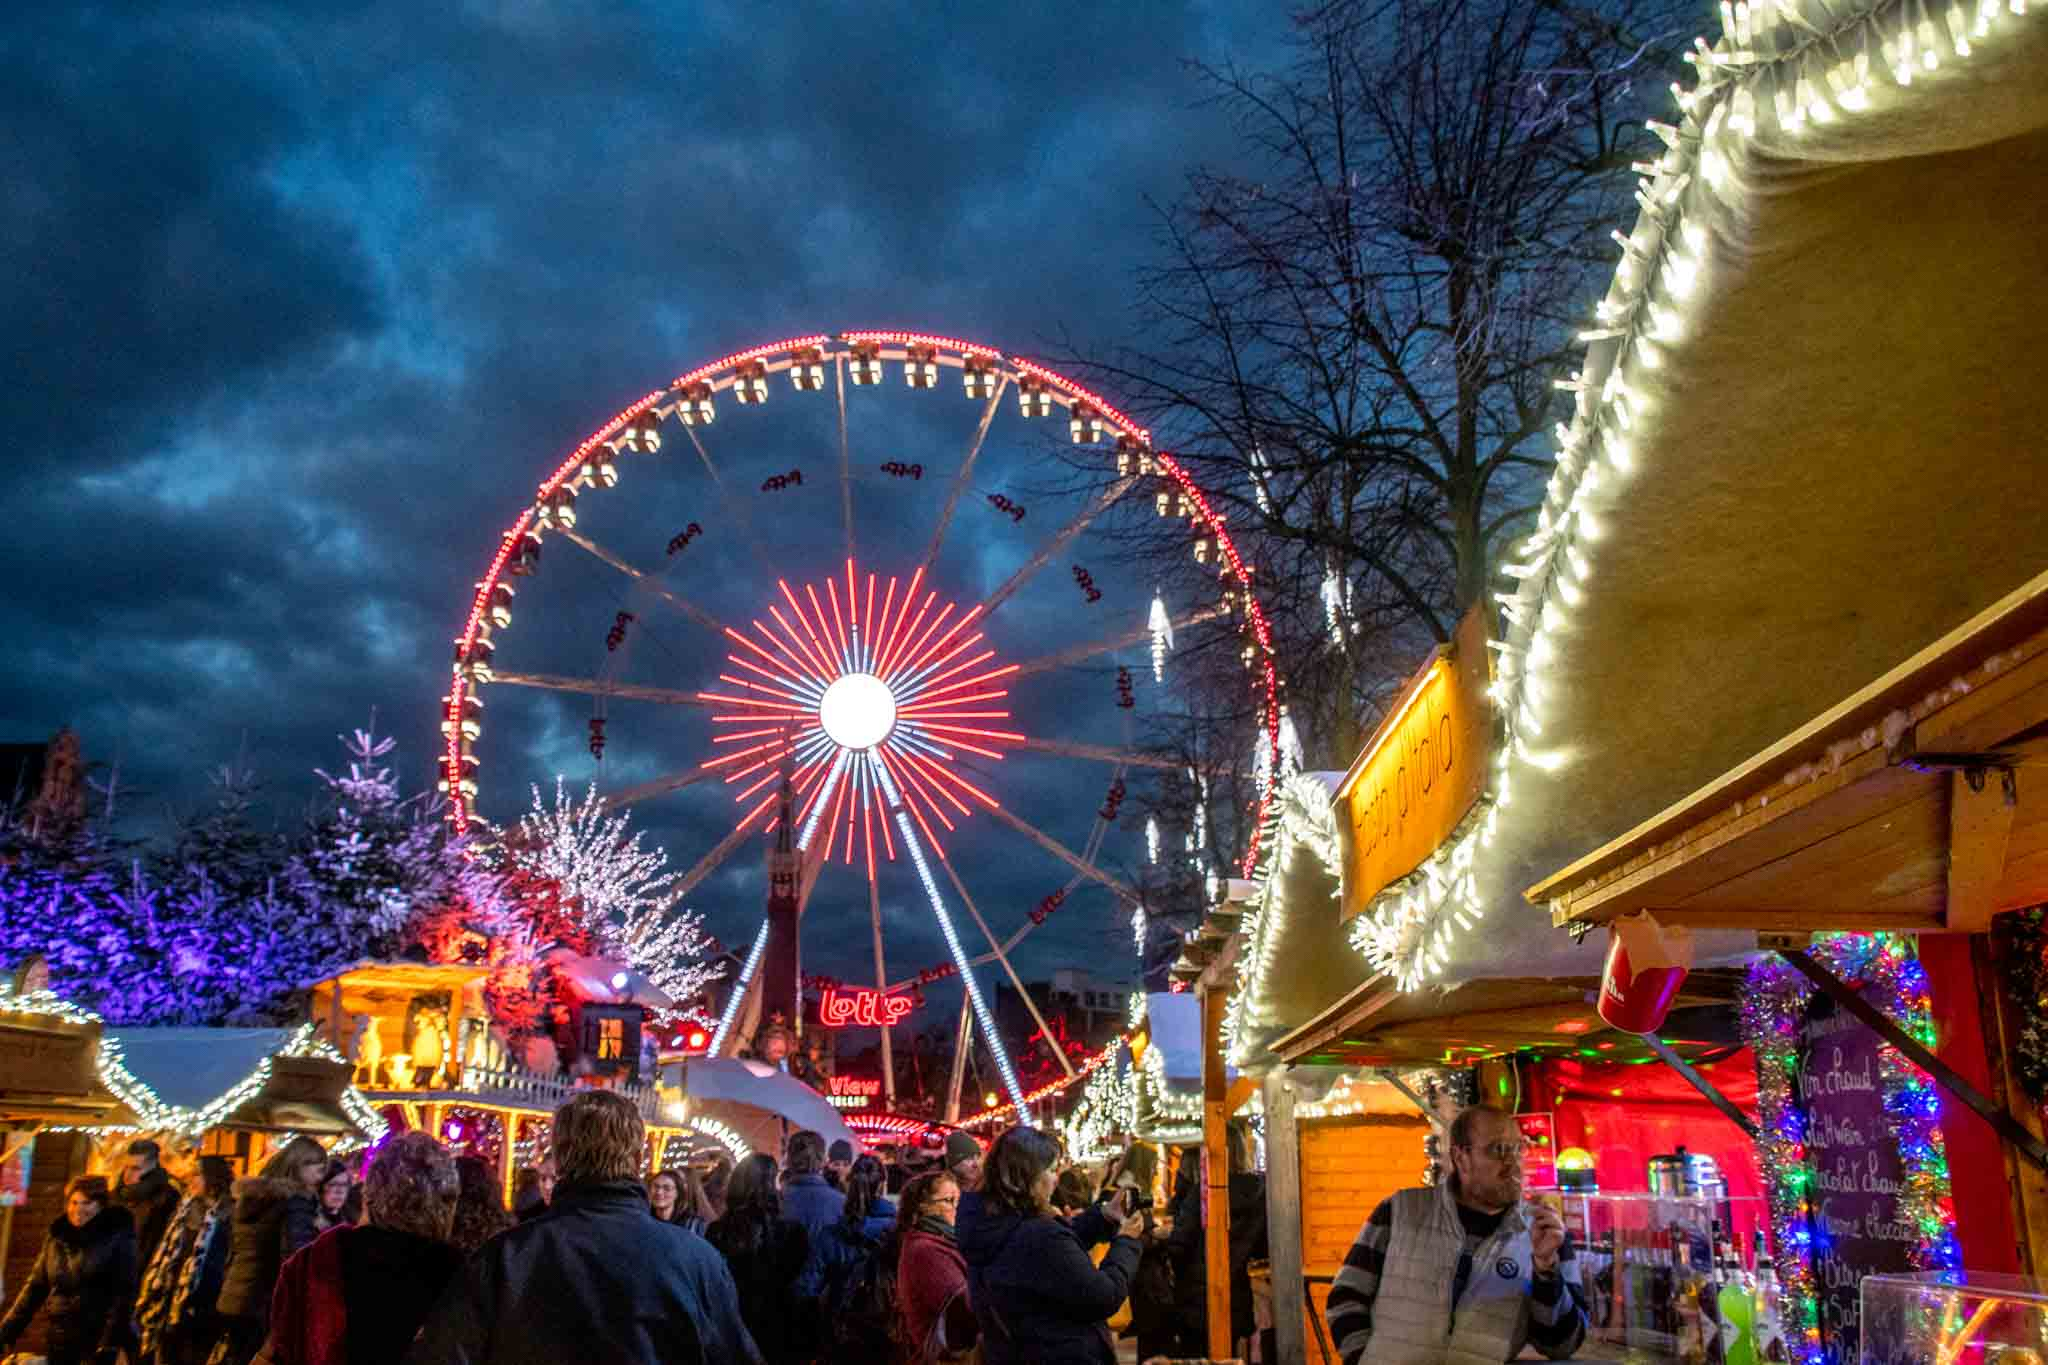 Ferris wheel, vendors, and shoppers at Brussels Christmas market